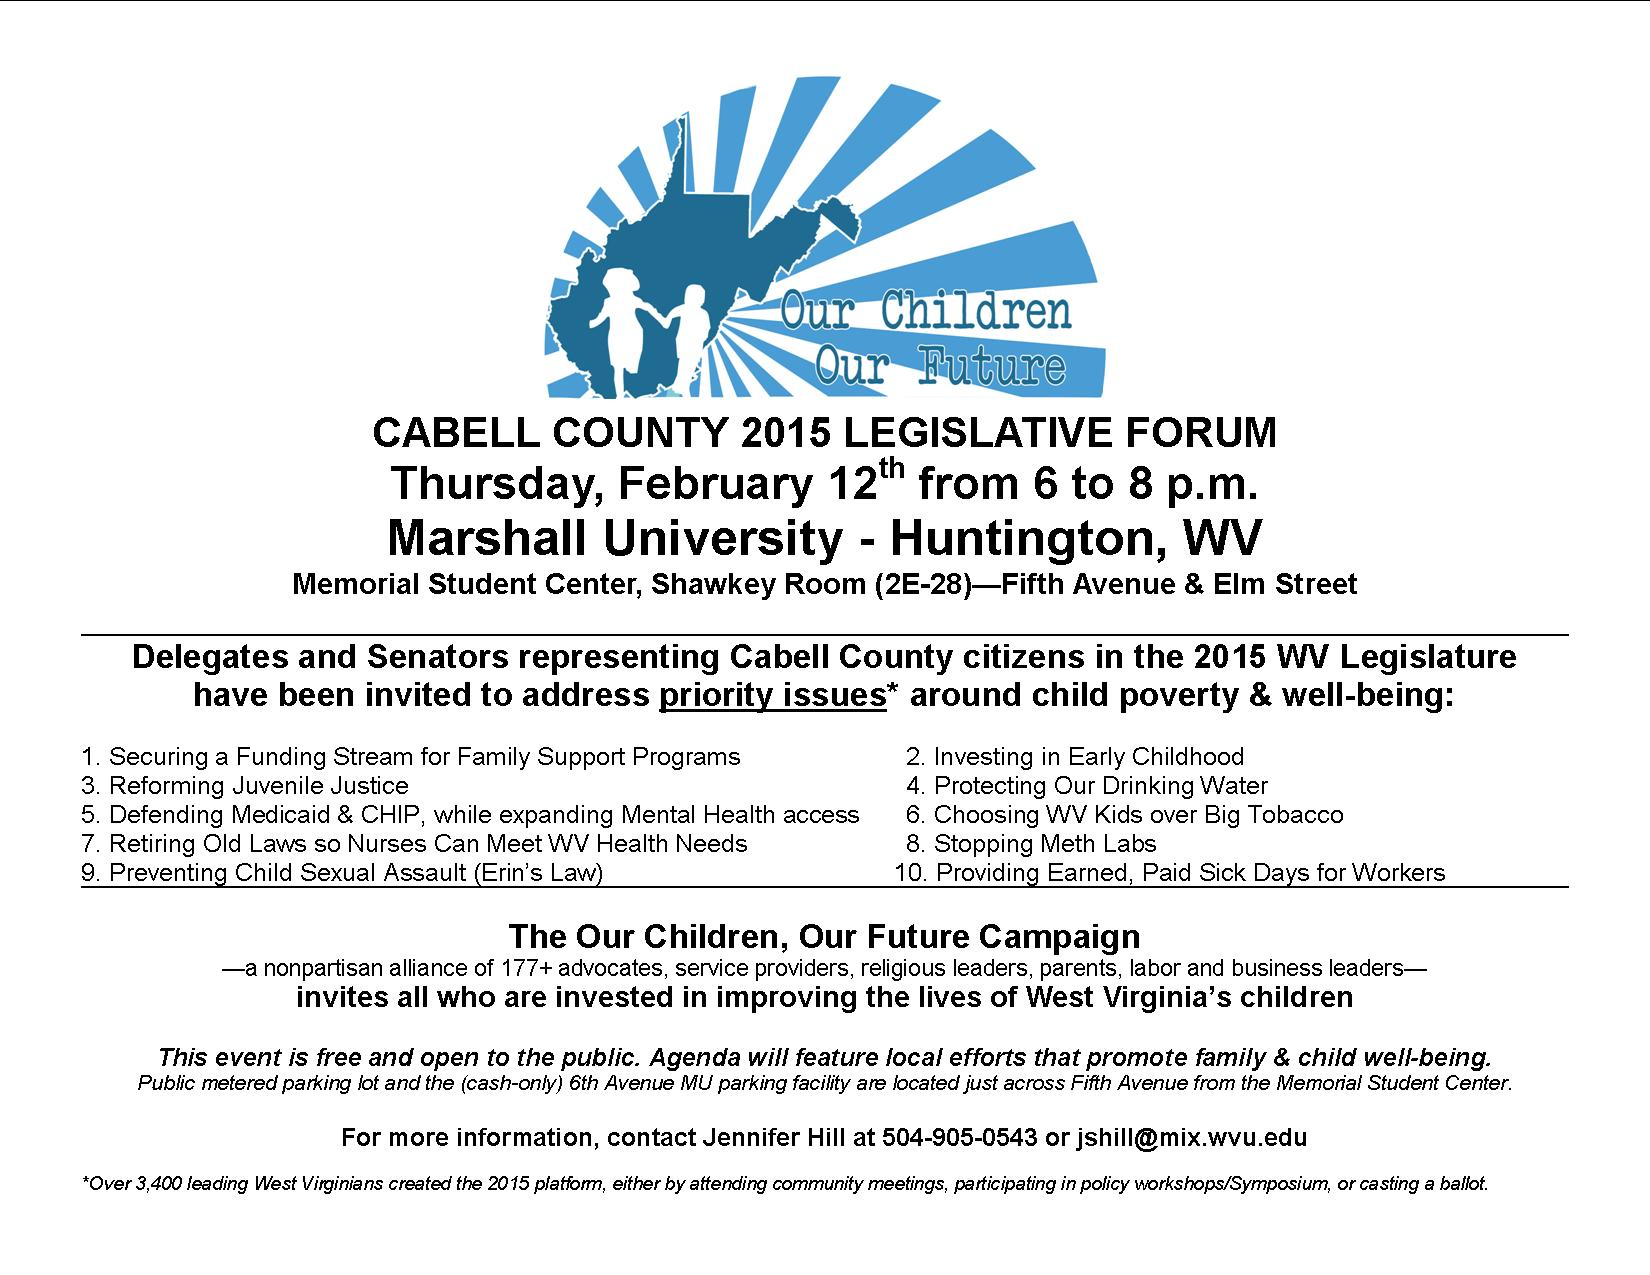 OCOF Cabell Forum Flyer 2-12-15